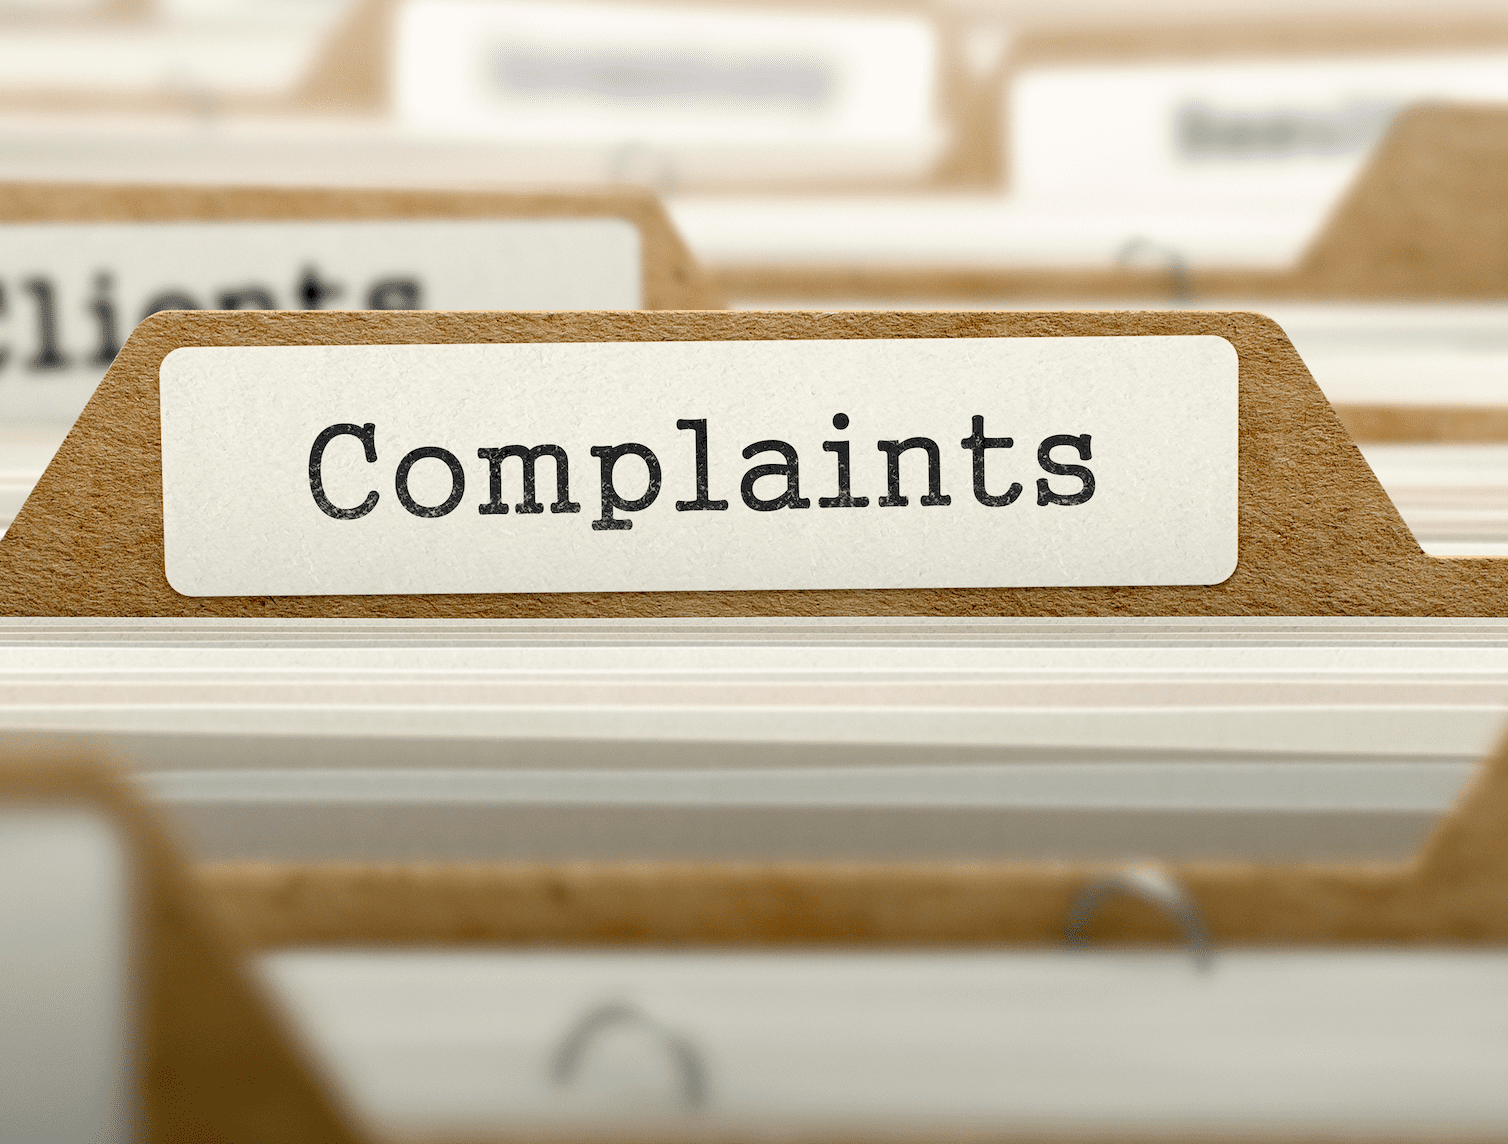 A cabinet displays a file of complaints   Photo: Shutterstock/ESB Professional